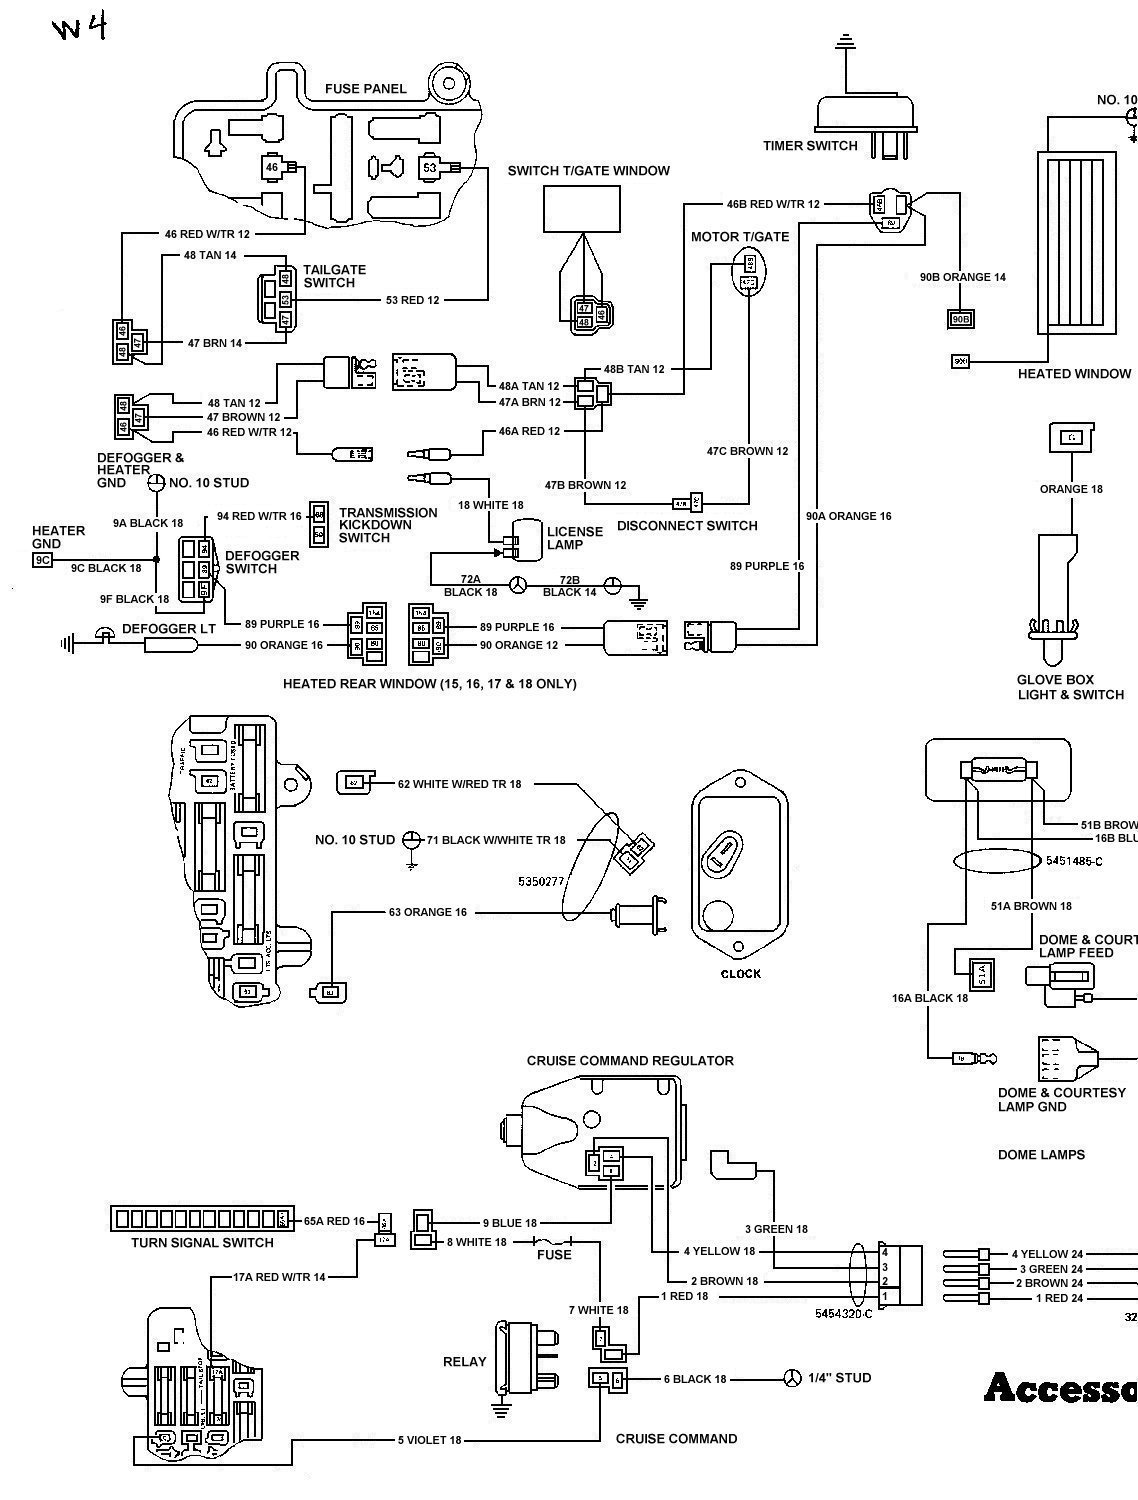 hight resolution of 1985 cj7 wiring diagram wiring library 84 cj7 dash 84 cj7 fuel diagram